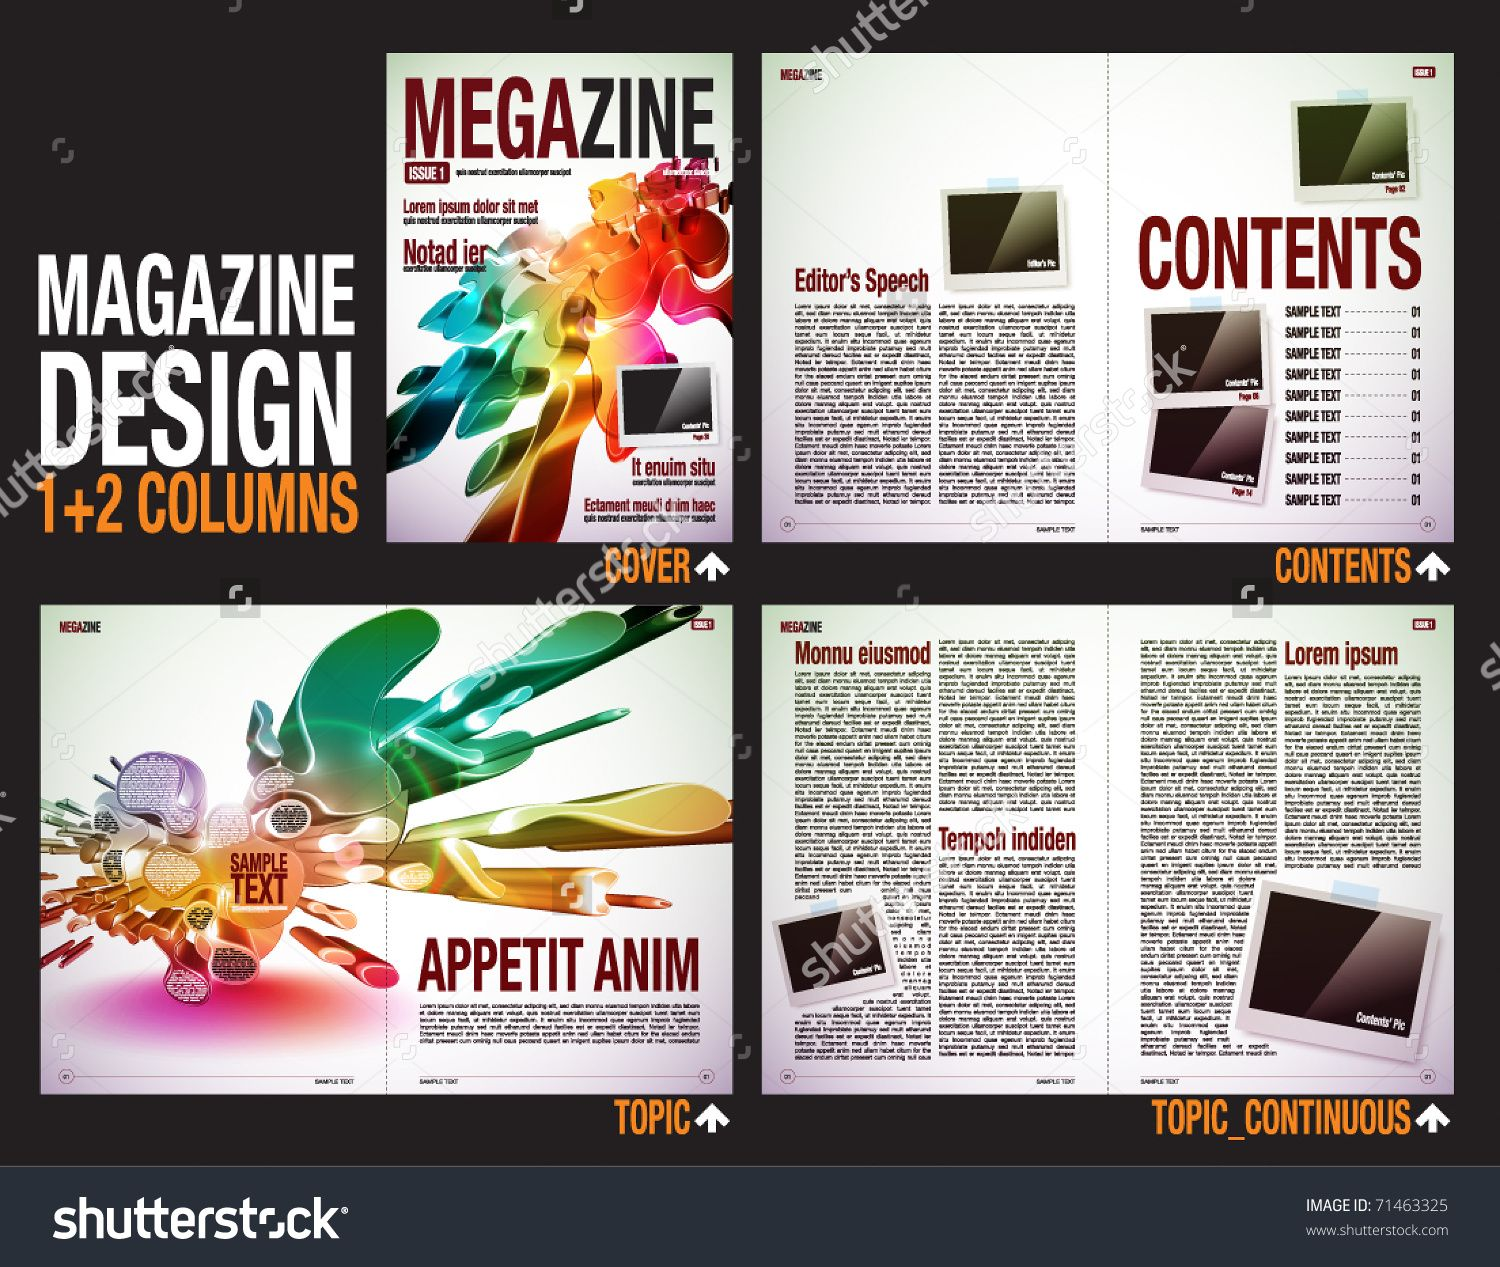 Magazine layout design template with cover 6 pages 3 spreads magazine layout design template with cover 6 pages 3 spreads pronofoot35fo Choice Image